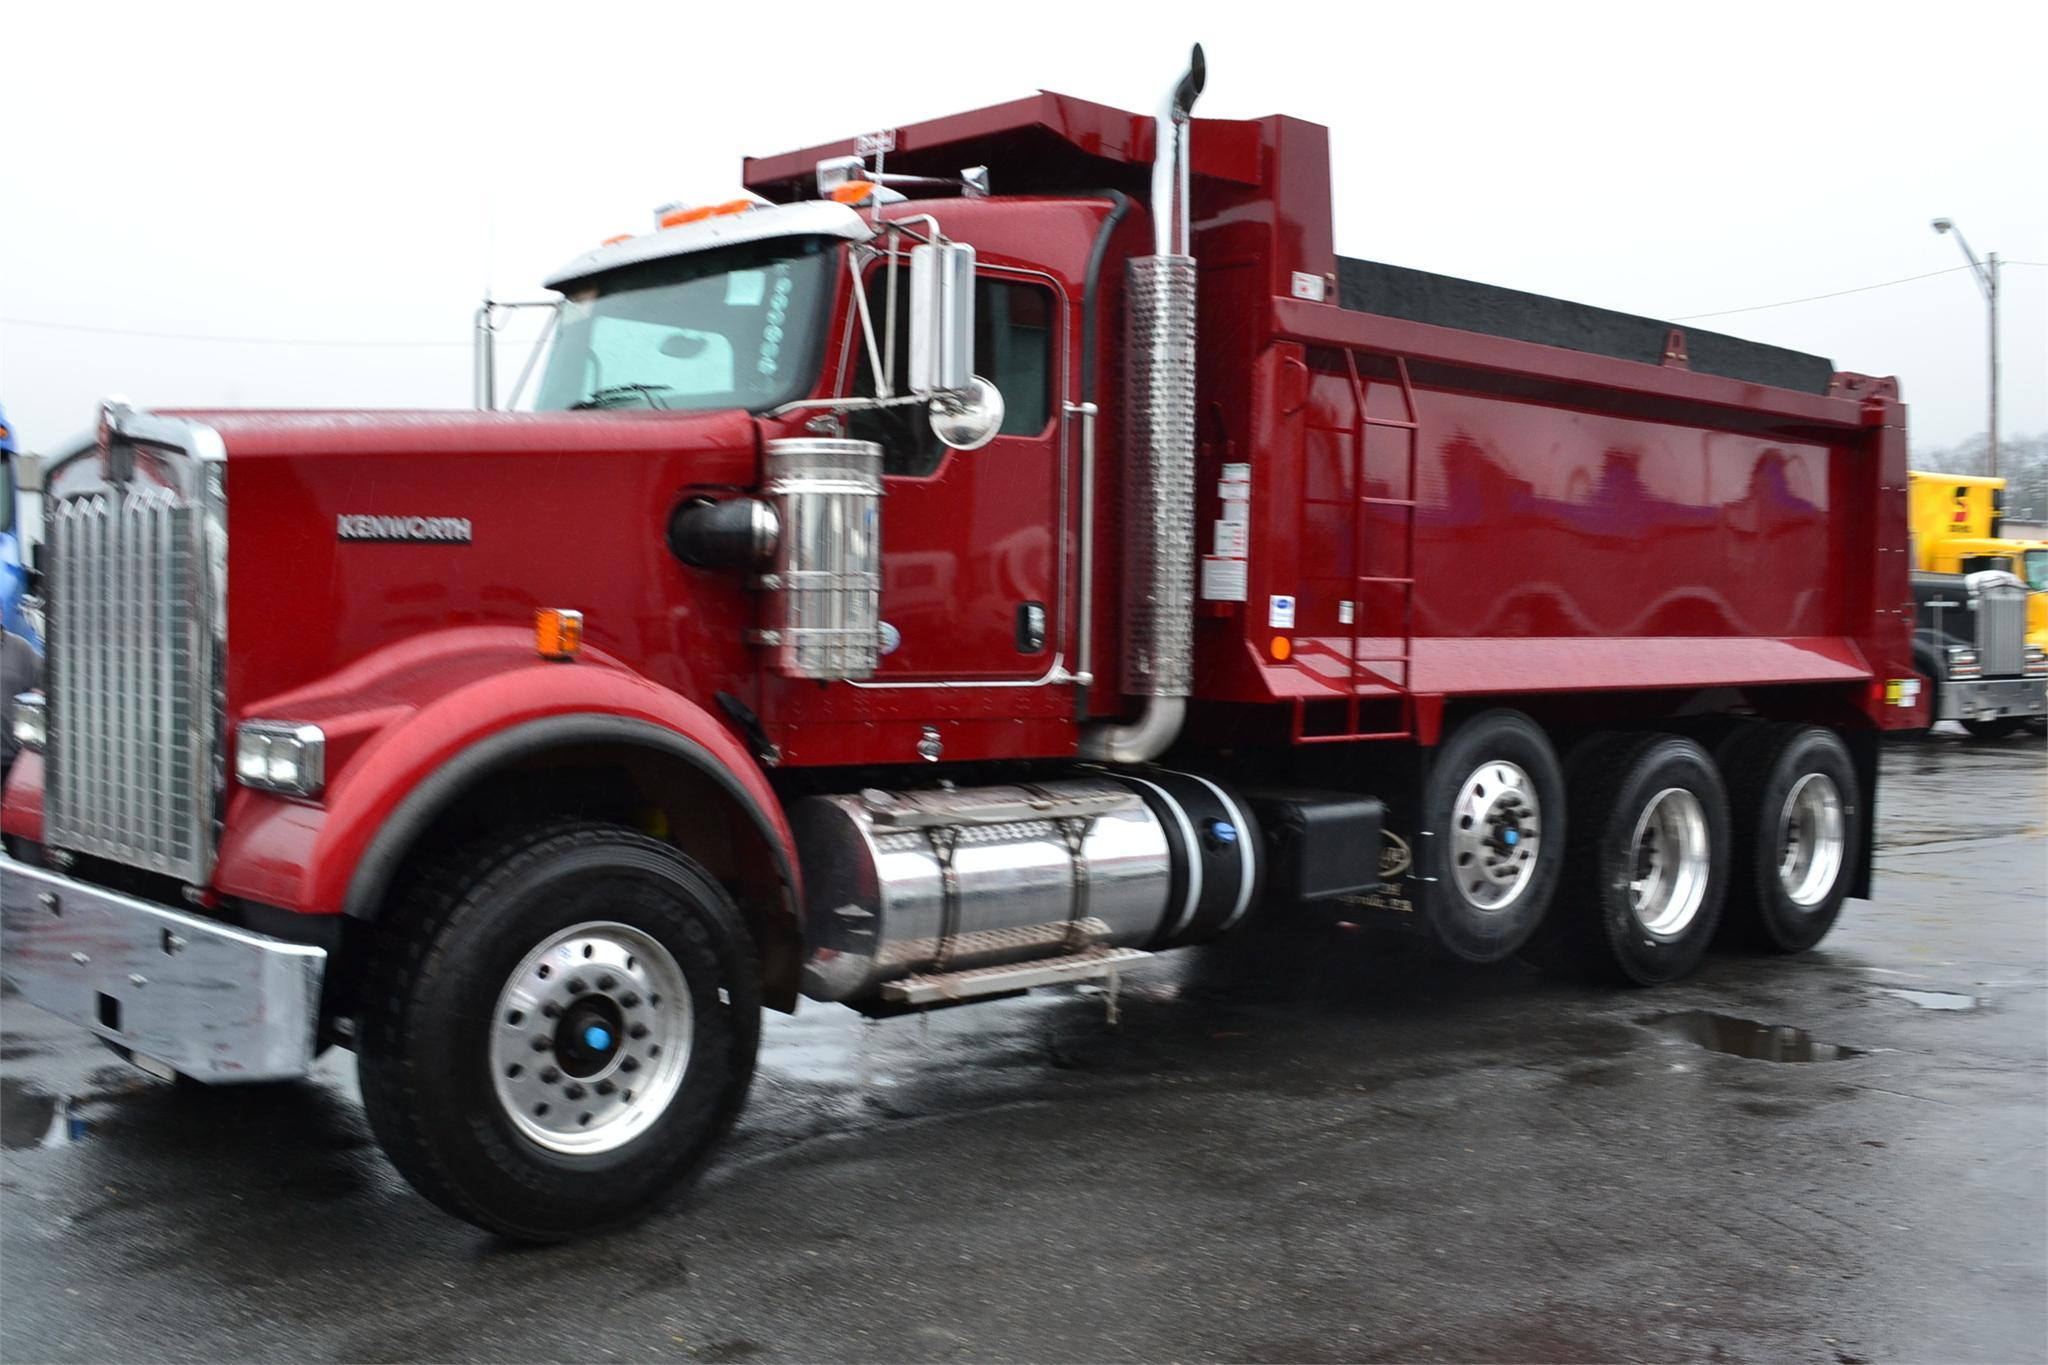 2015 Kenworth W900, Landover MD - 111814708 ...Kenworth Dump Trucks